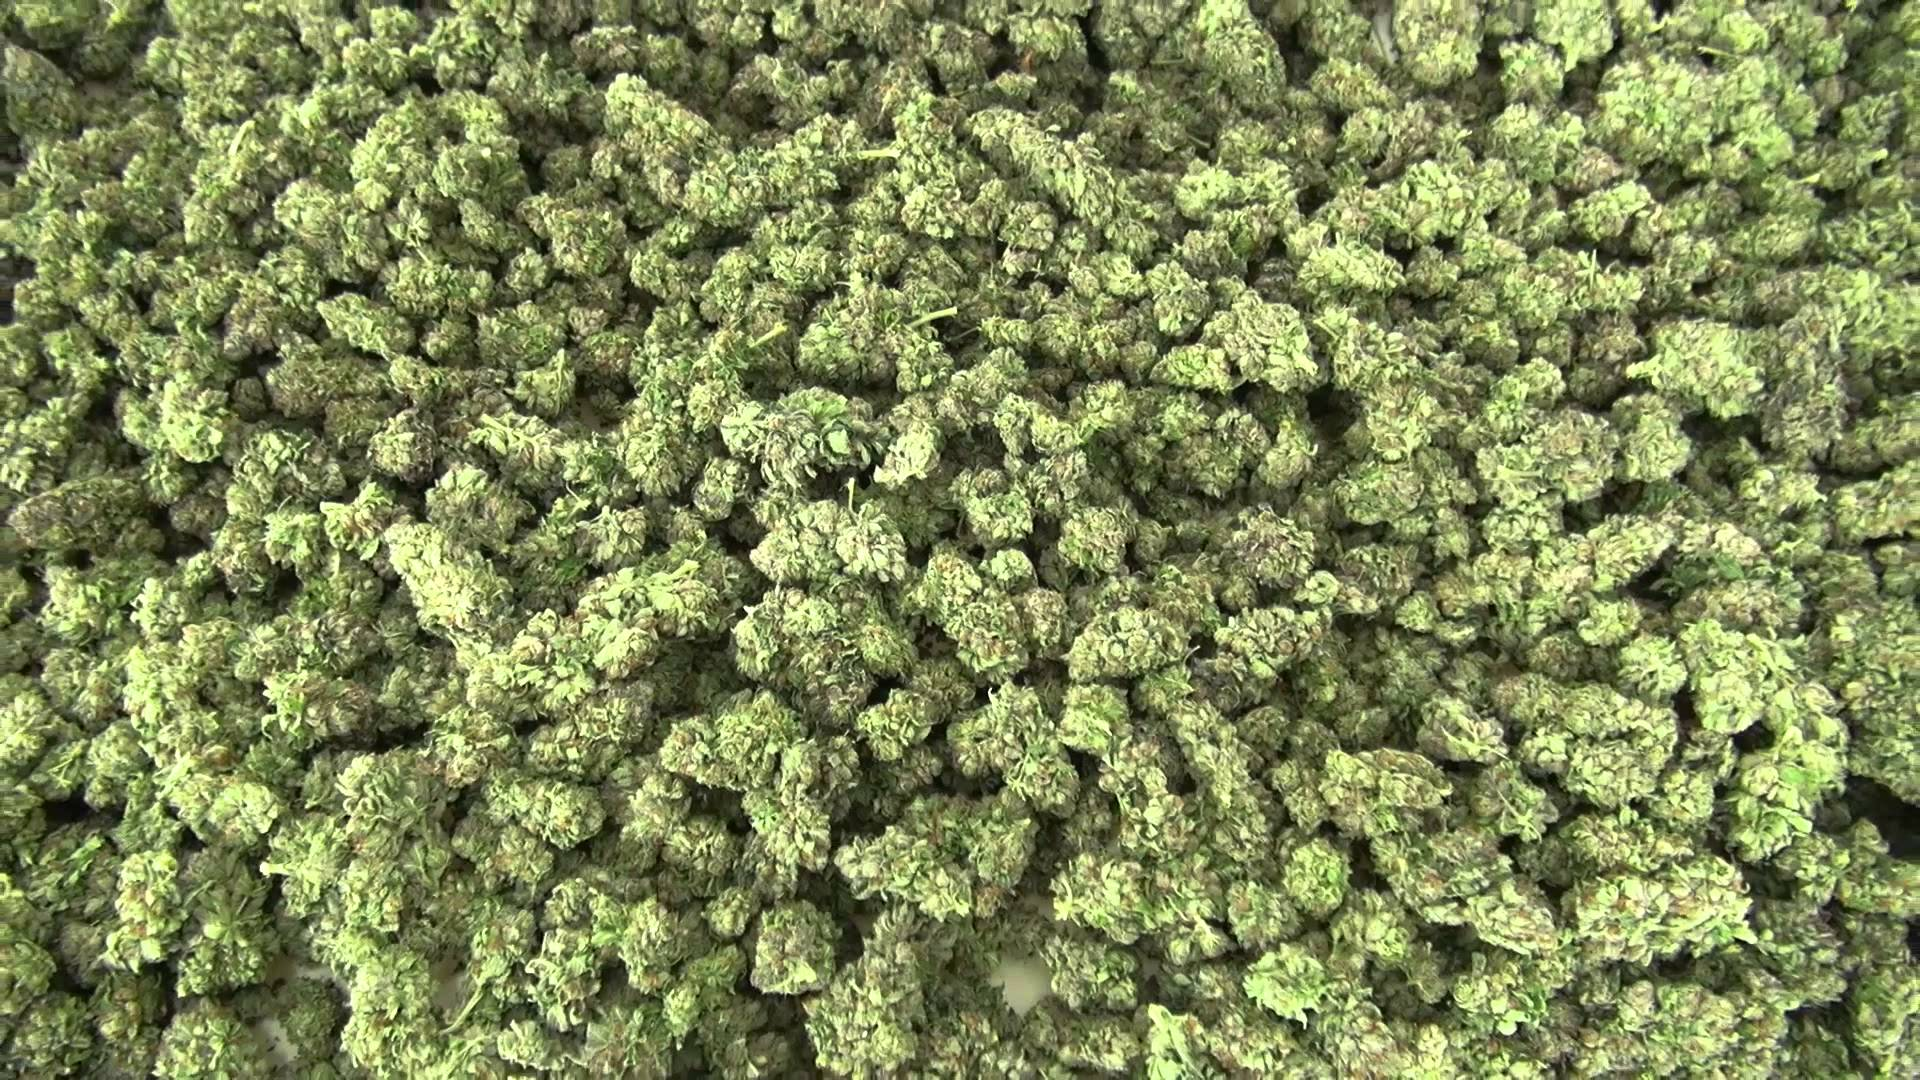 Six Major Cannabis Producers Set to Provide 74,000kg of Cannabis into Quebec